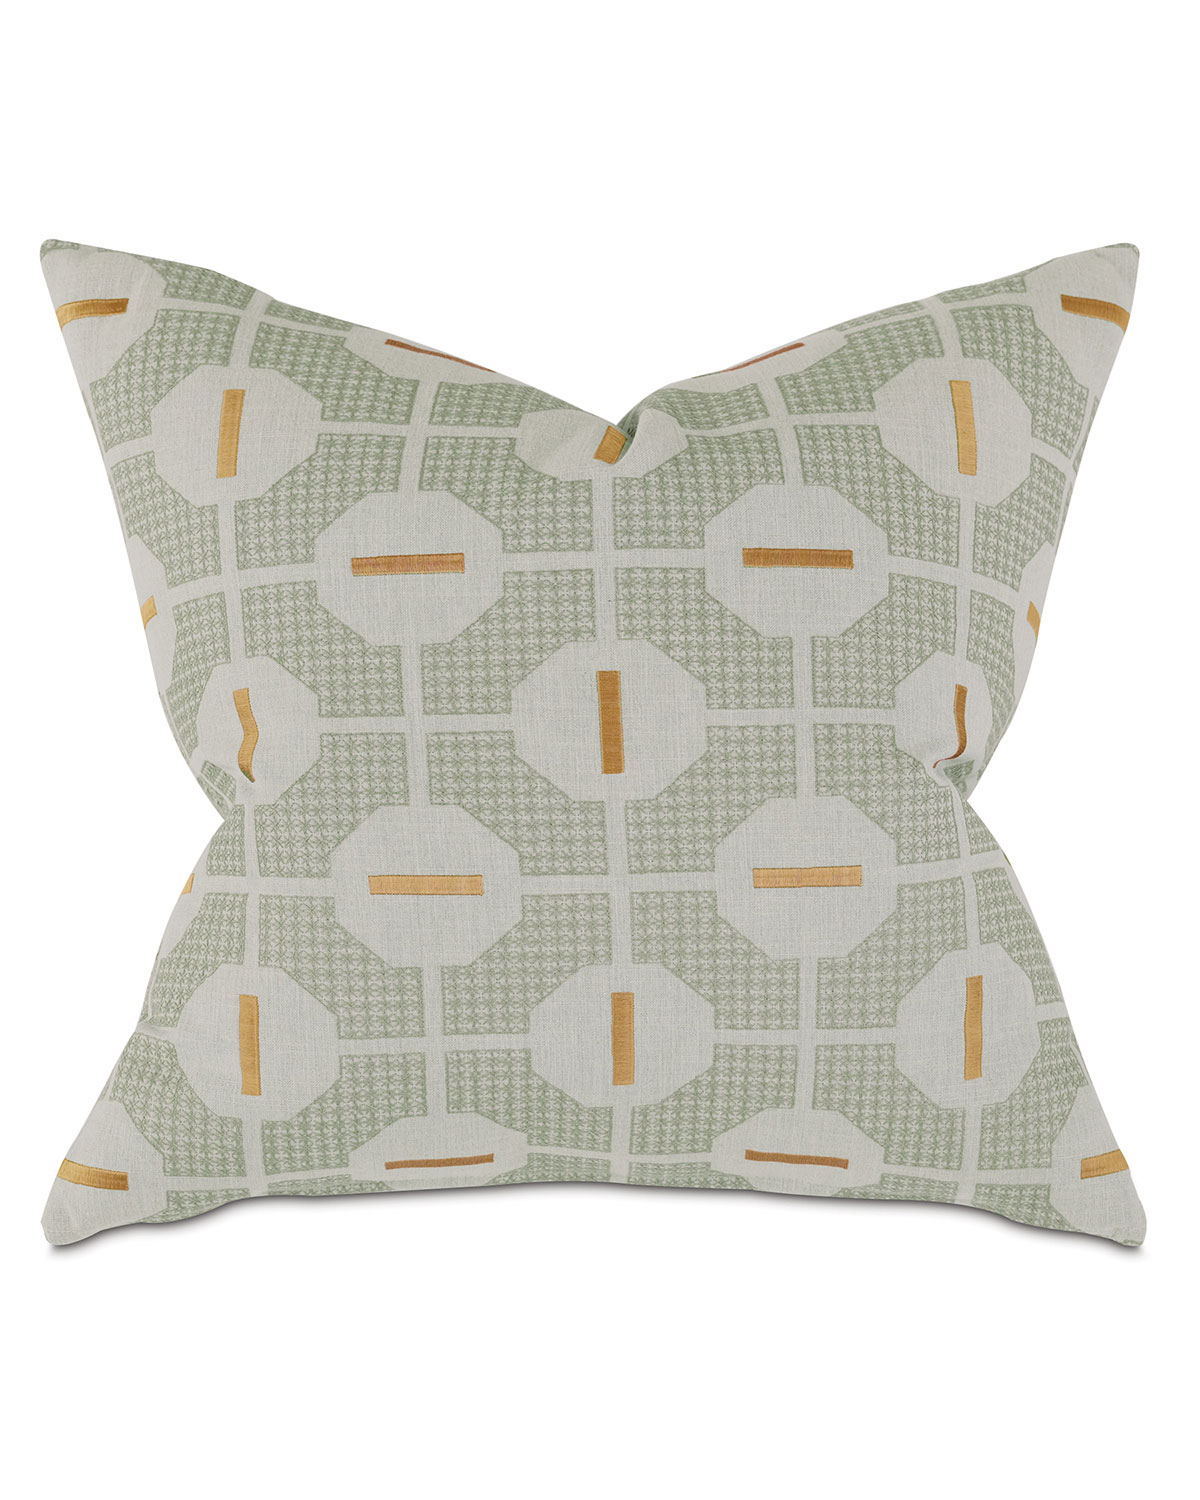 Eastern Accents Octave Mustard Decorative Pillow